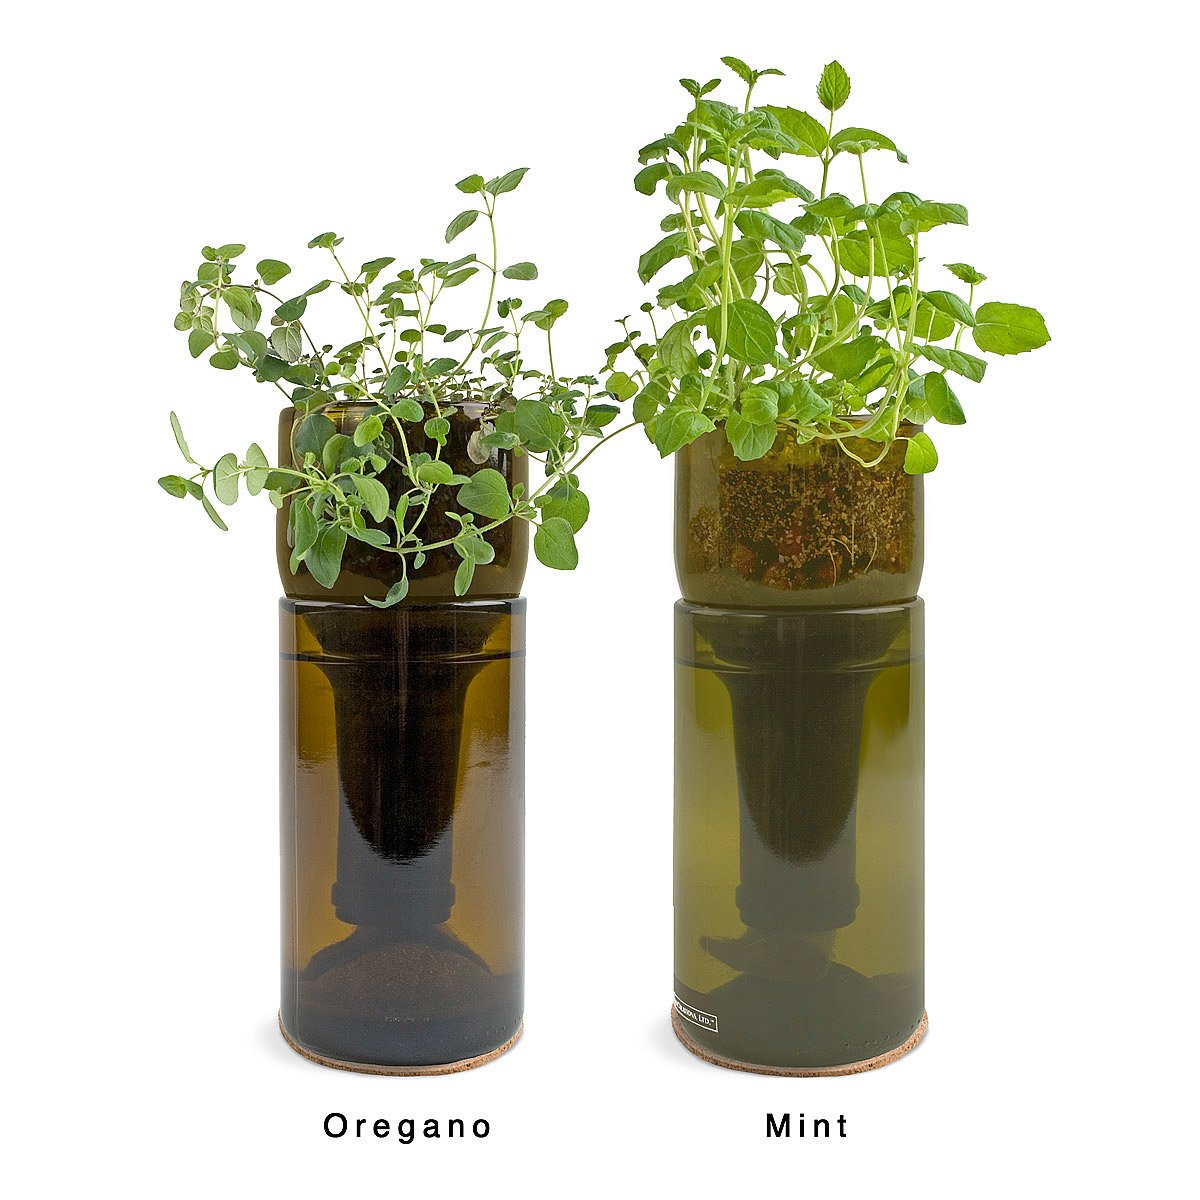 Kitchen Herb Garden Planter Growbottle Indoor Herb Garden Kit Wine Bottle Planter